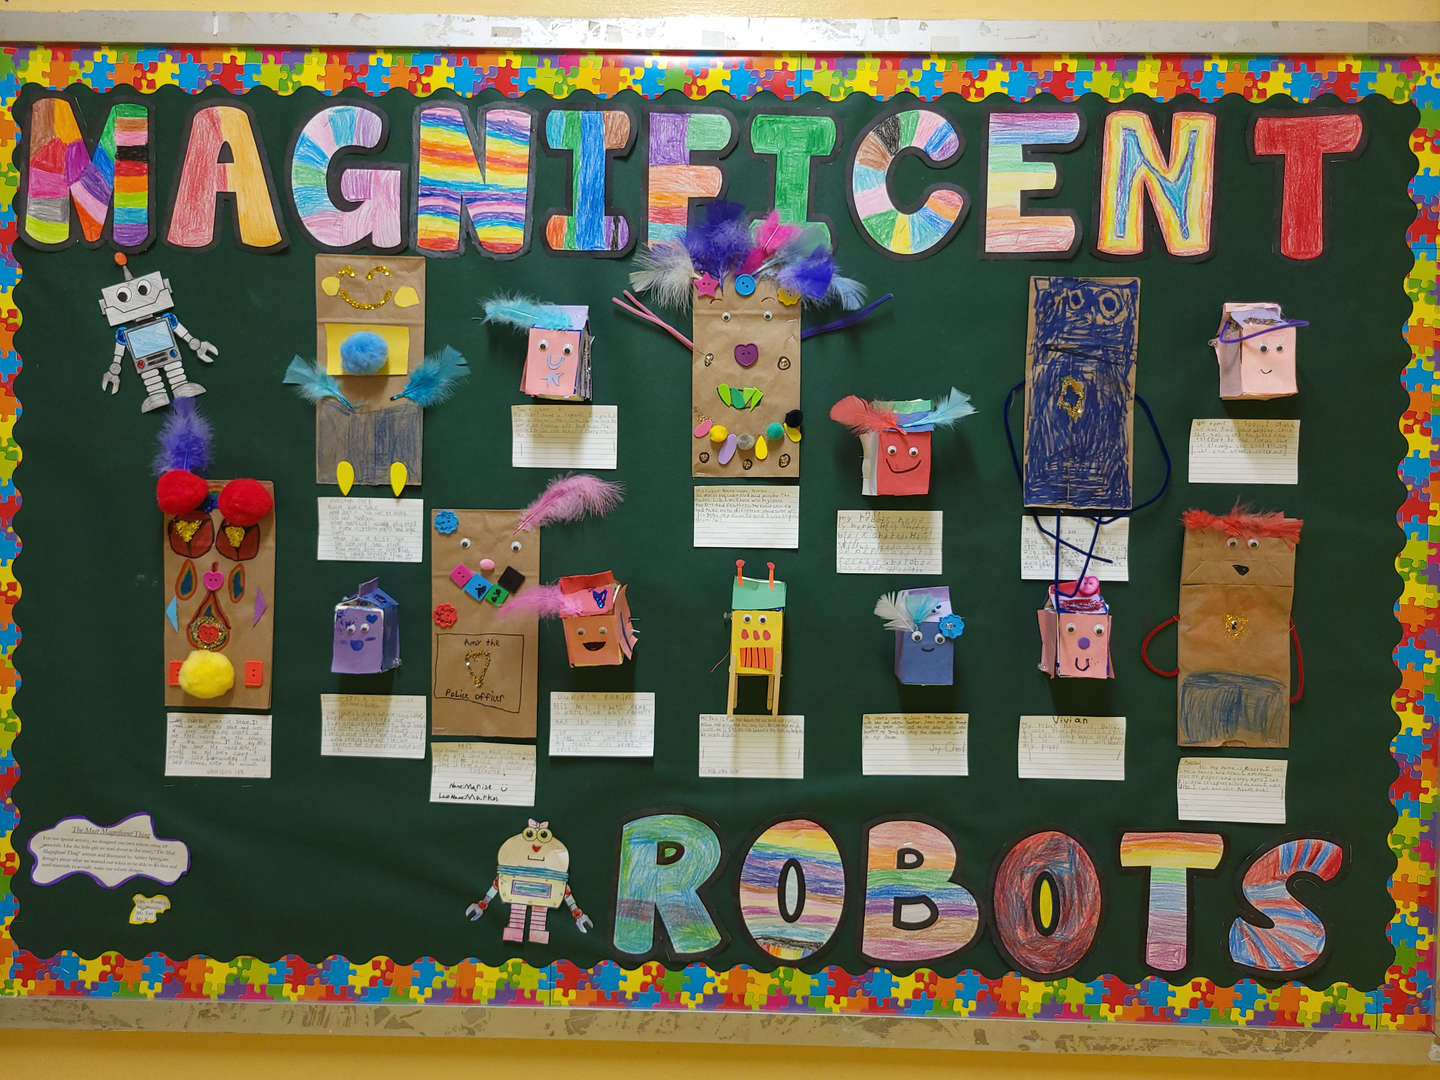 School bulletin board of the robots the students built.